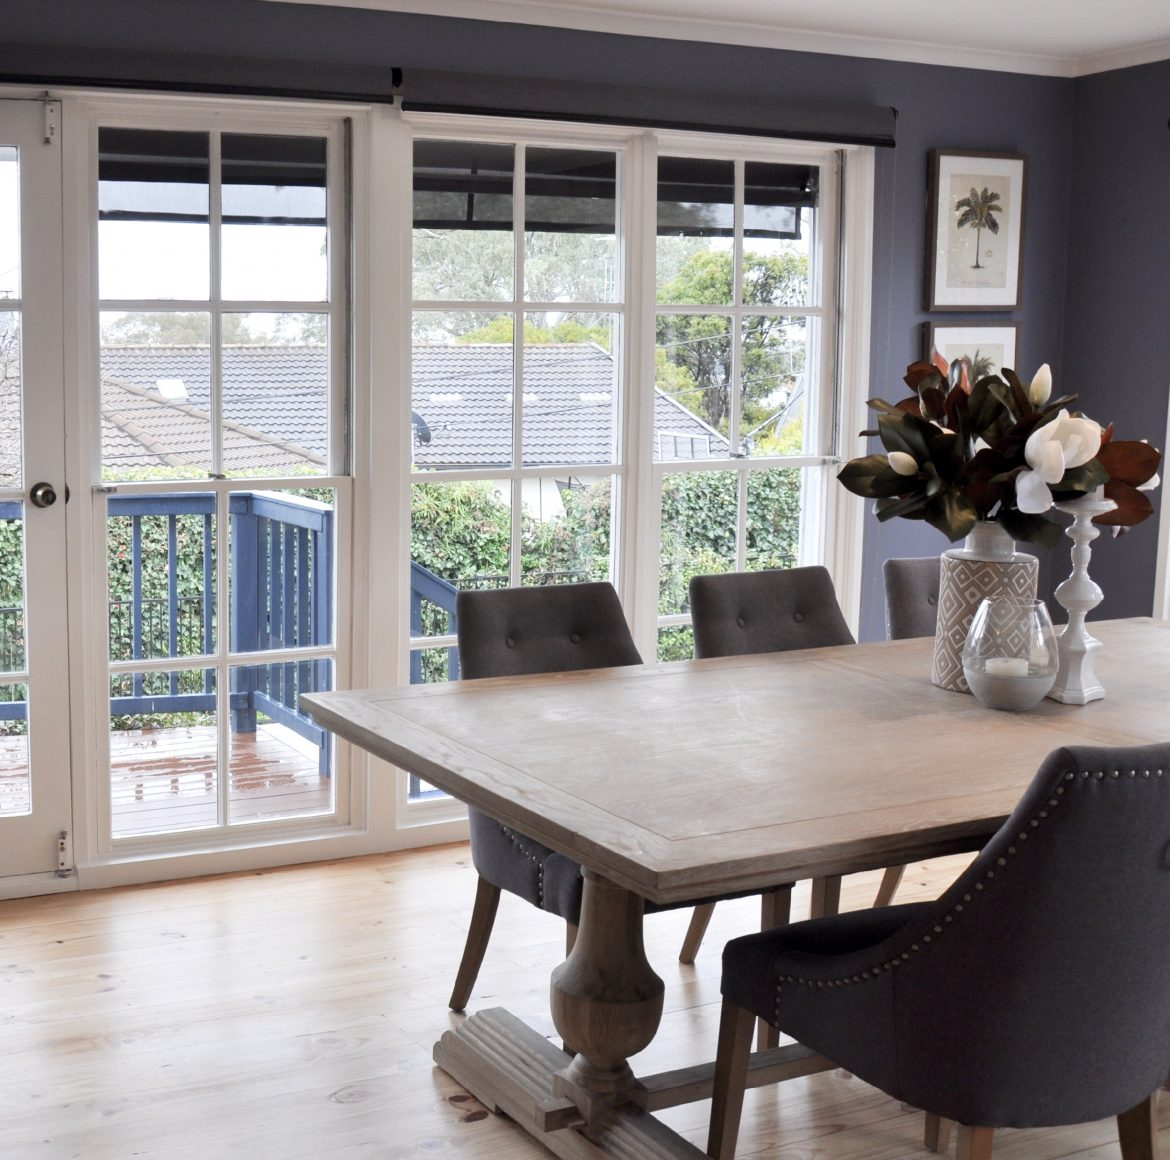 Canberra Real Estate Market Update July 2019 Feature Image showing a table in front of a French Door